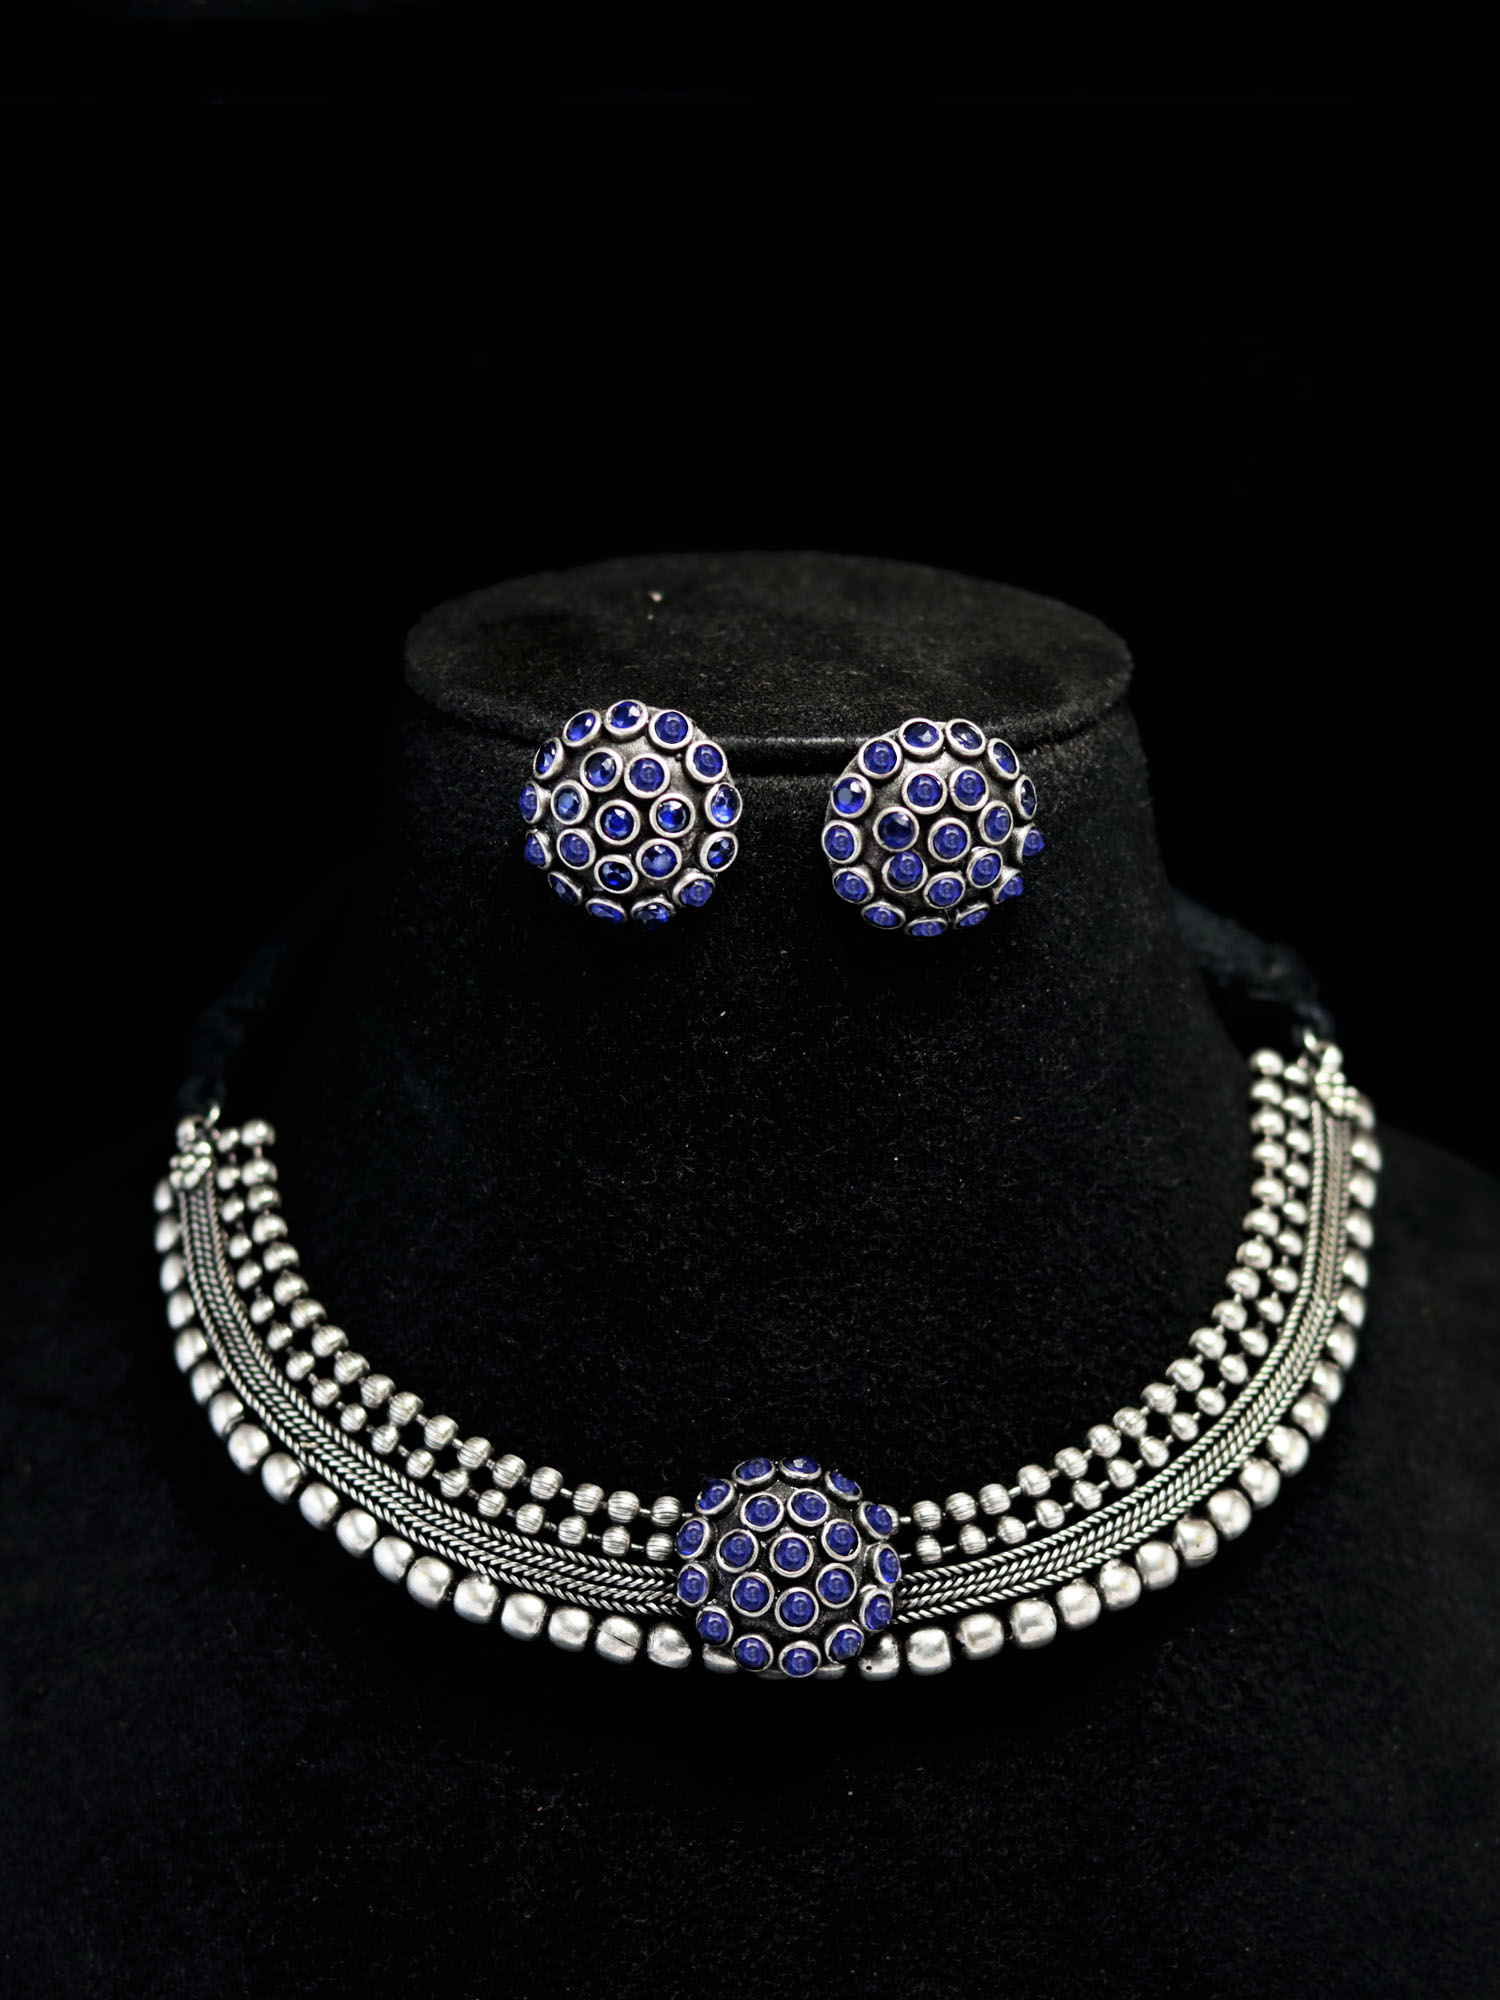 Fabulous Silver Lookalike Stone Choker Necklace Set